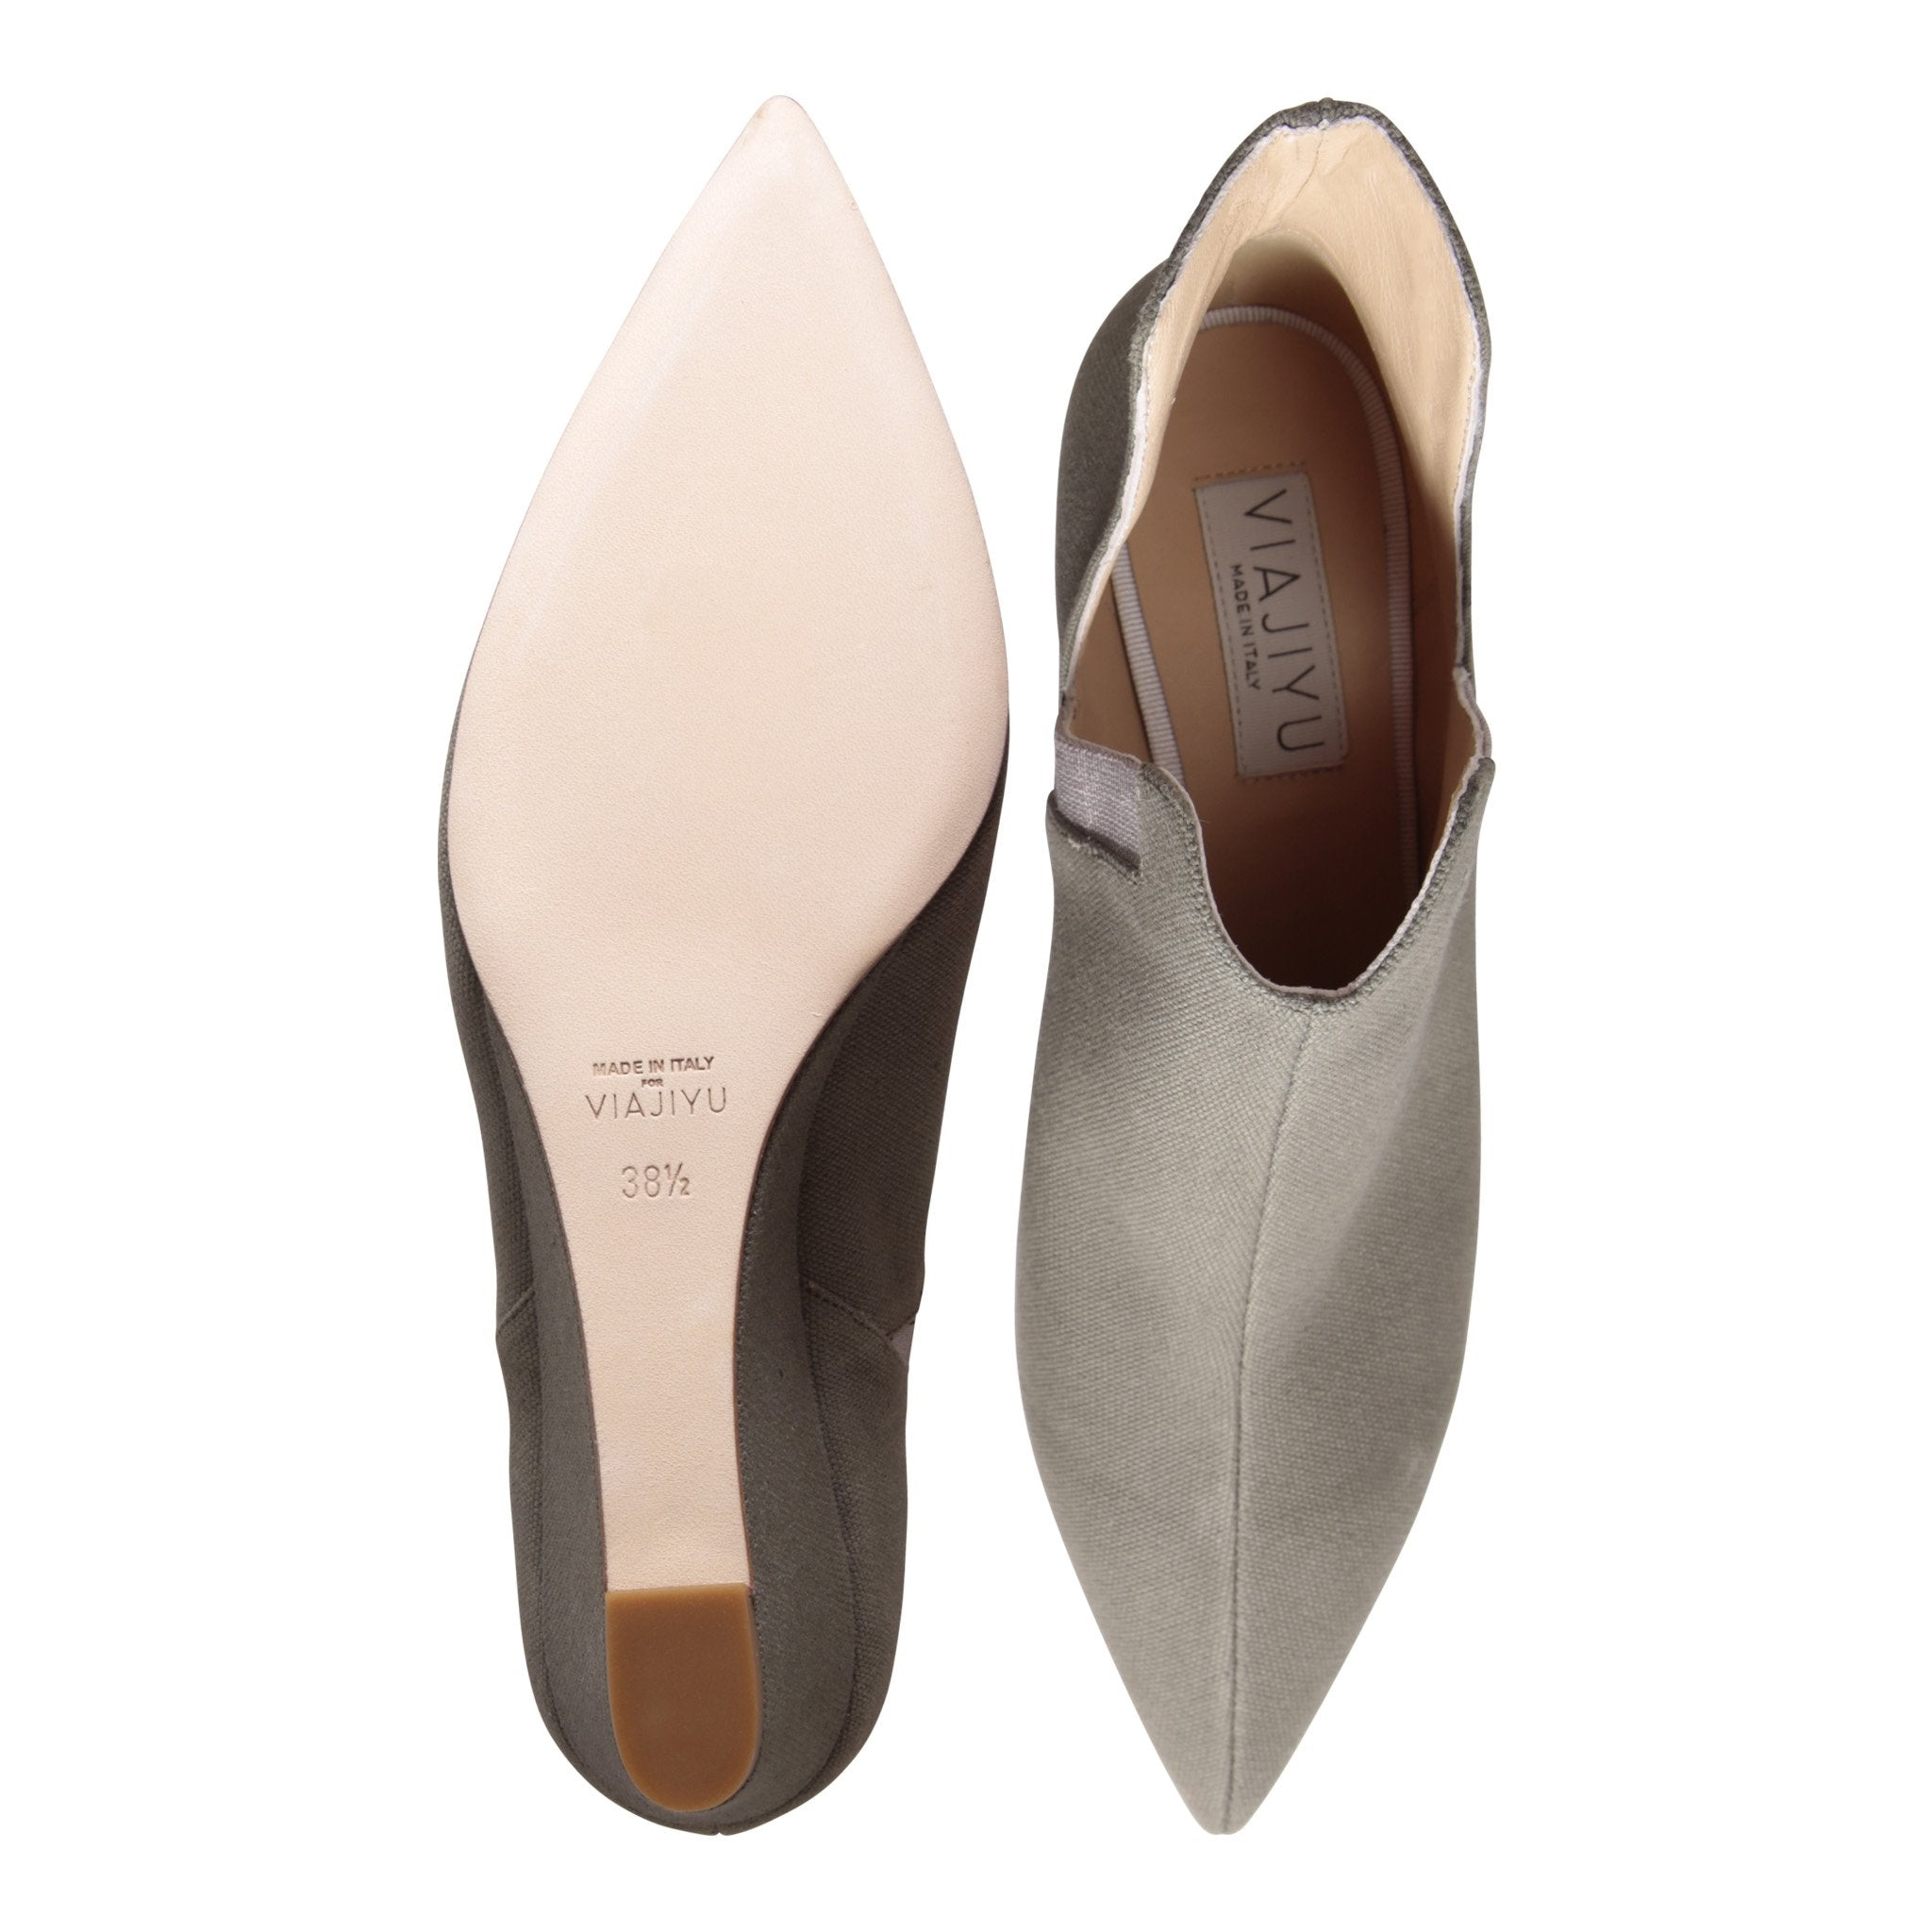 SYRENE - Canvas Fango + Grosgrain Burro, VIAJIYU - Women's Hand Made Sustainable Luxury Shoes. Made in Italy. Made to Order.